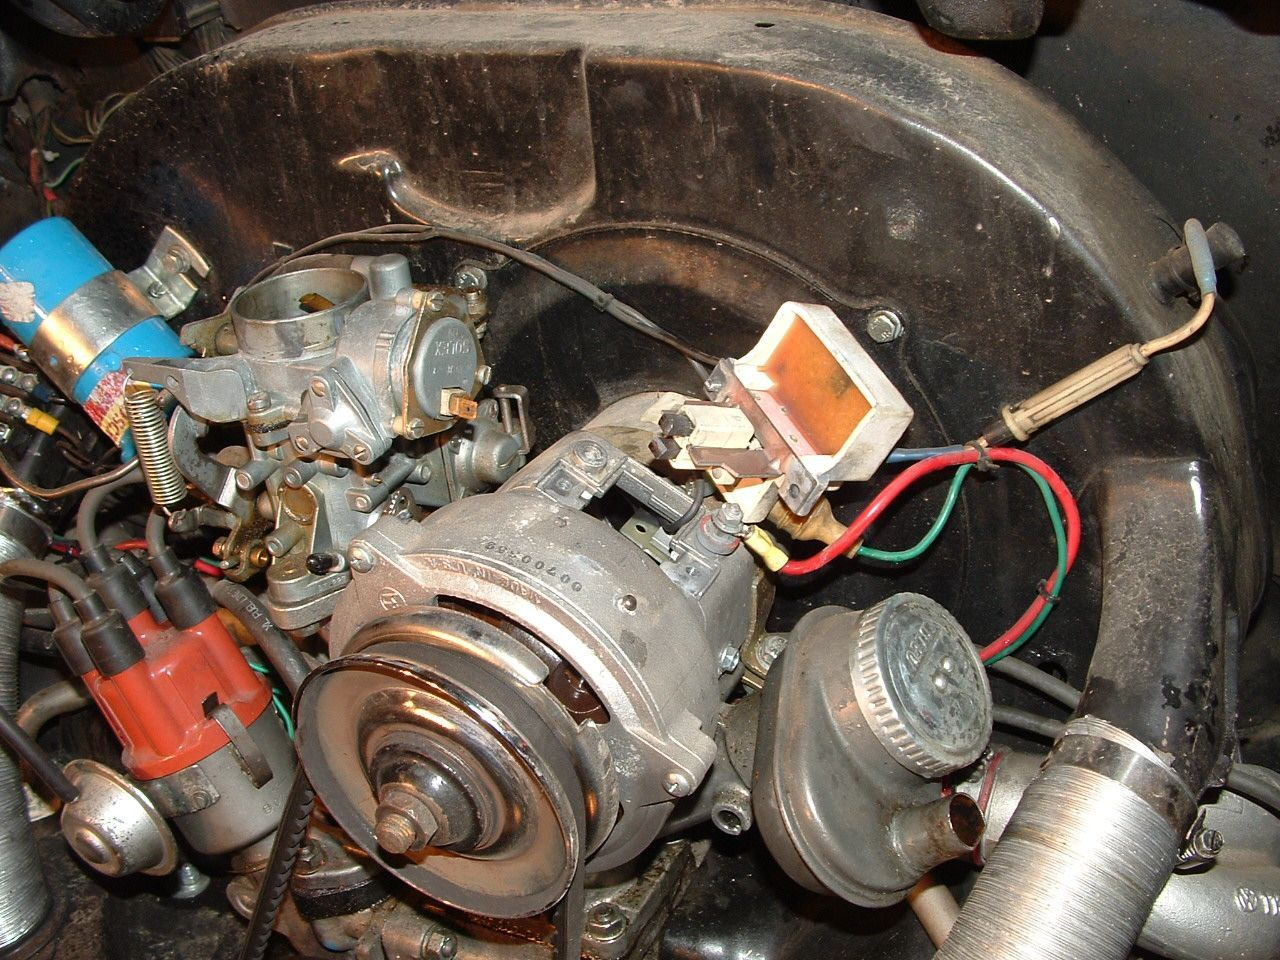 Alternator Rebuilding Gen Air Cooled Vw Wiring Diagram A Wire That Will Prevent You From Moving It Up Too Far Note The Two Brushes Extend Down Into And Rub On Slip Rings